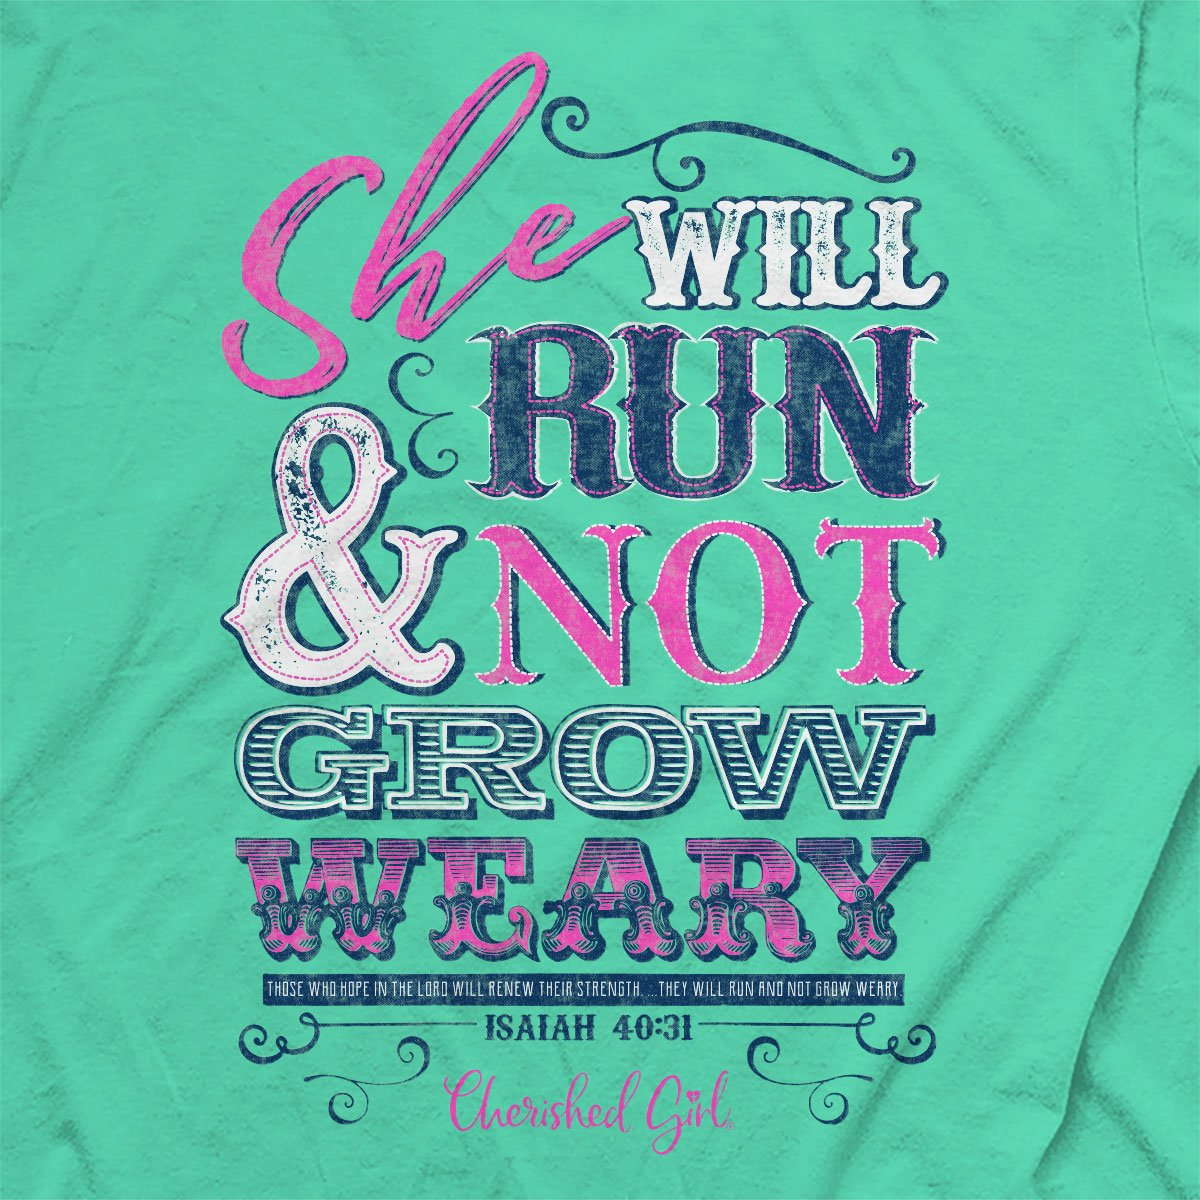 Cherished Girl Christian T-Shirt Run And Not Grow Weary Isaiah 40:31